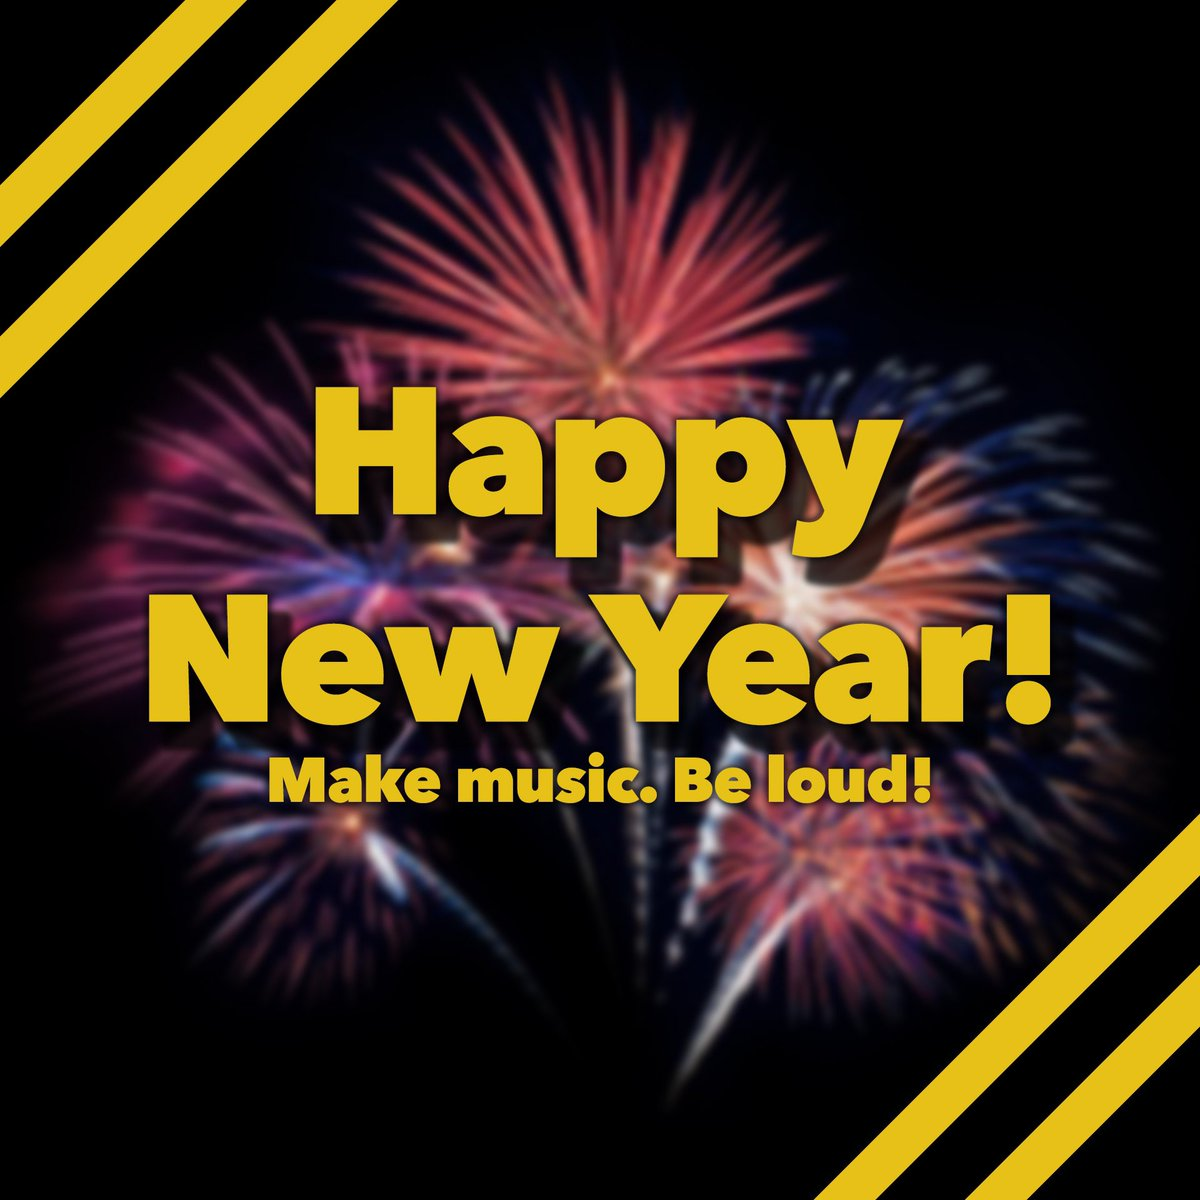 Happy New Year from The Black Music Action Coalition! #2021